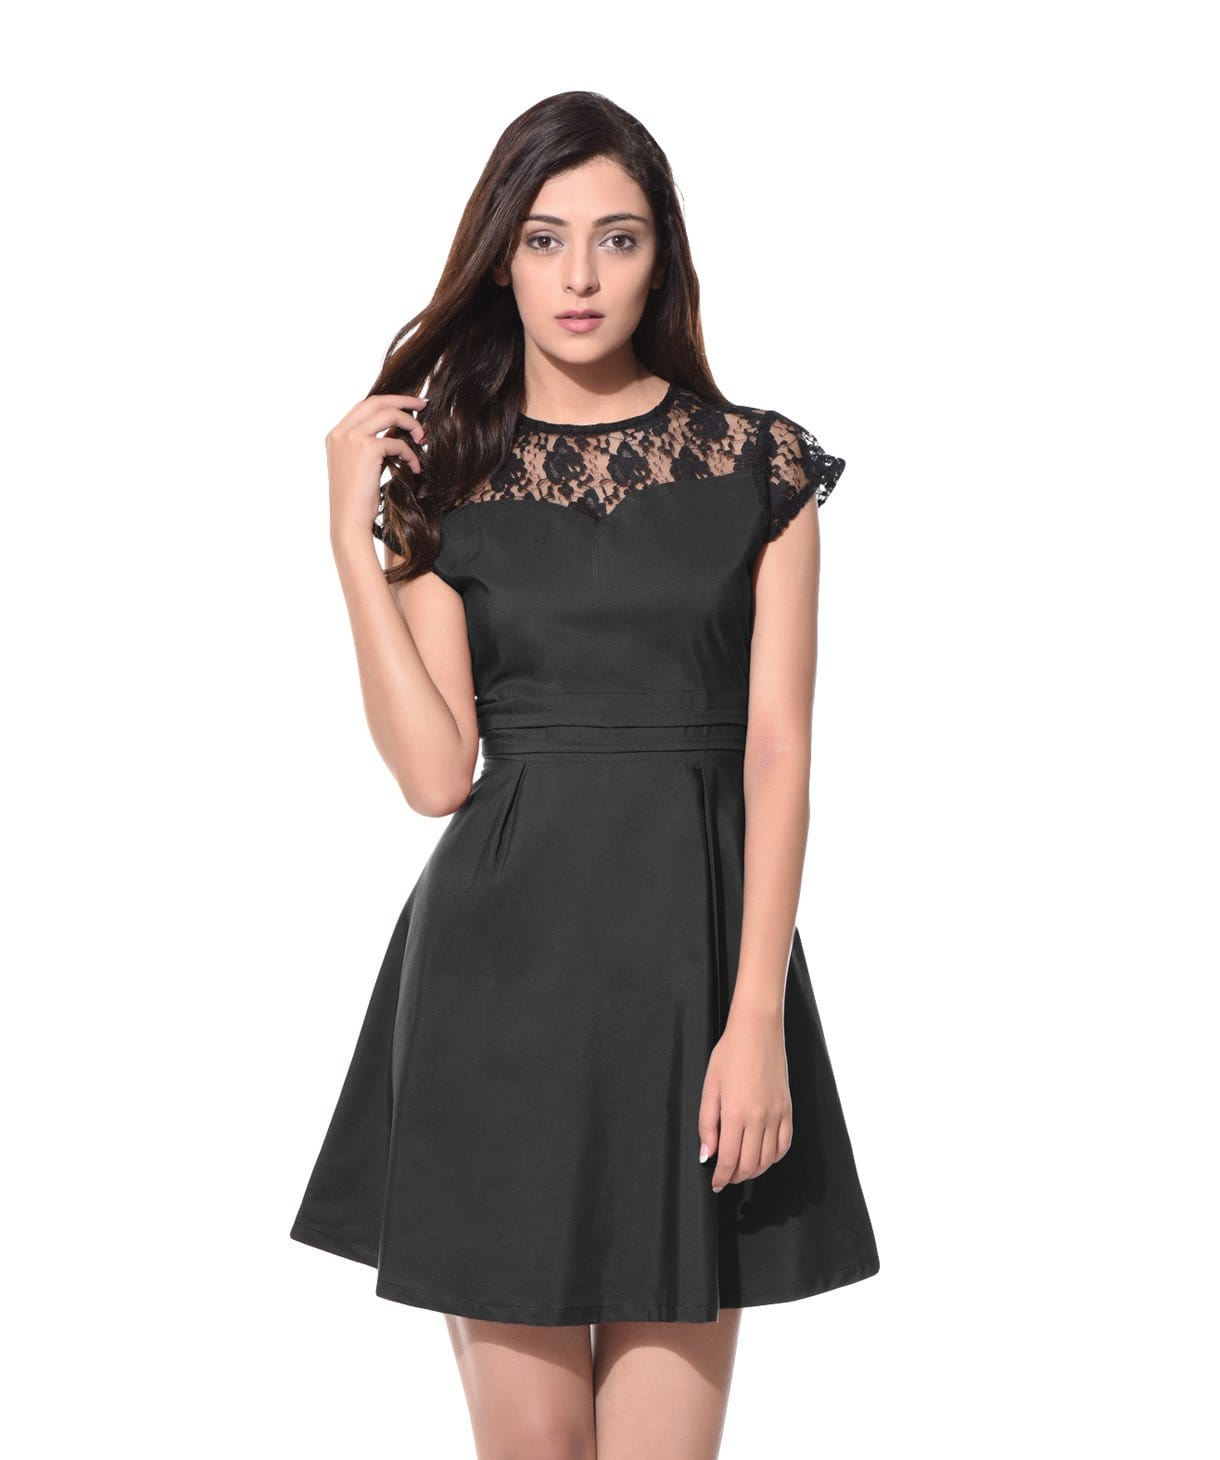 Solid Black Lace Neck Skater Dress - Uptownie